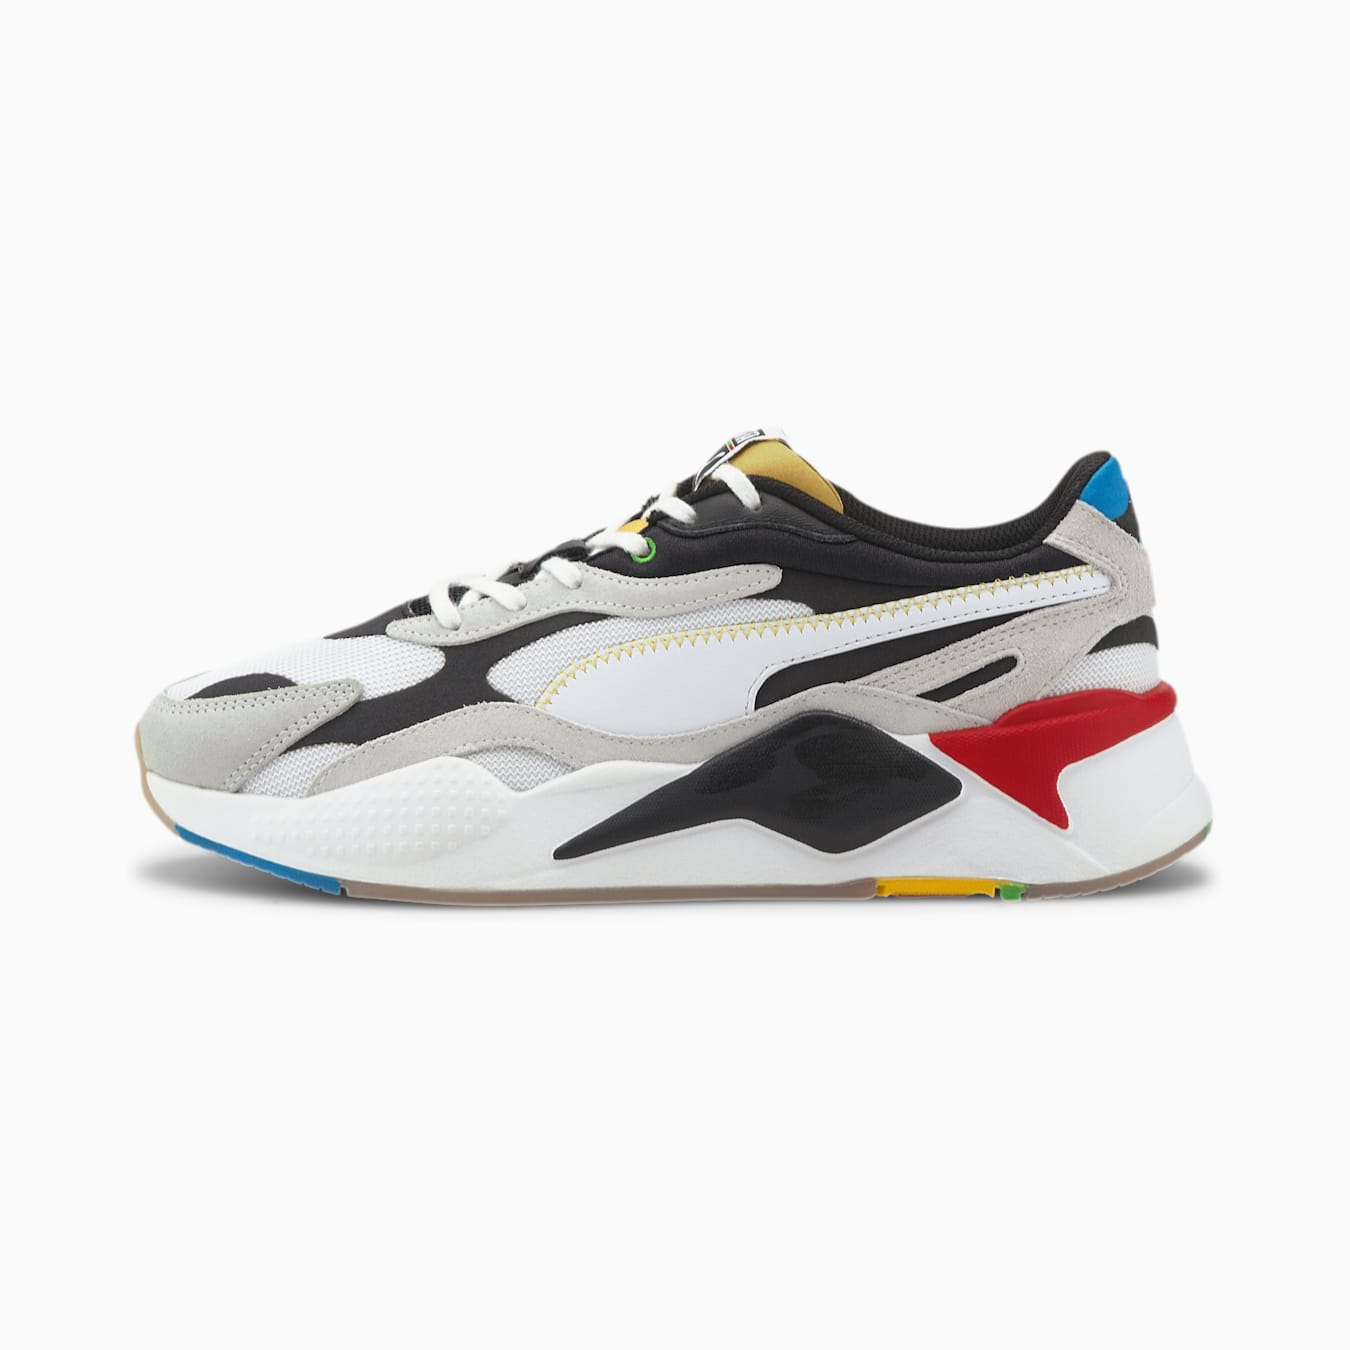 プーマ PUMA レディーススニーカー RS-X3 WH 373308【FITHOUSE ONLINE SHOP】